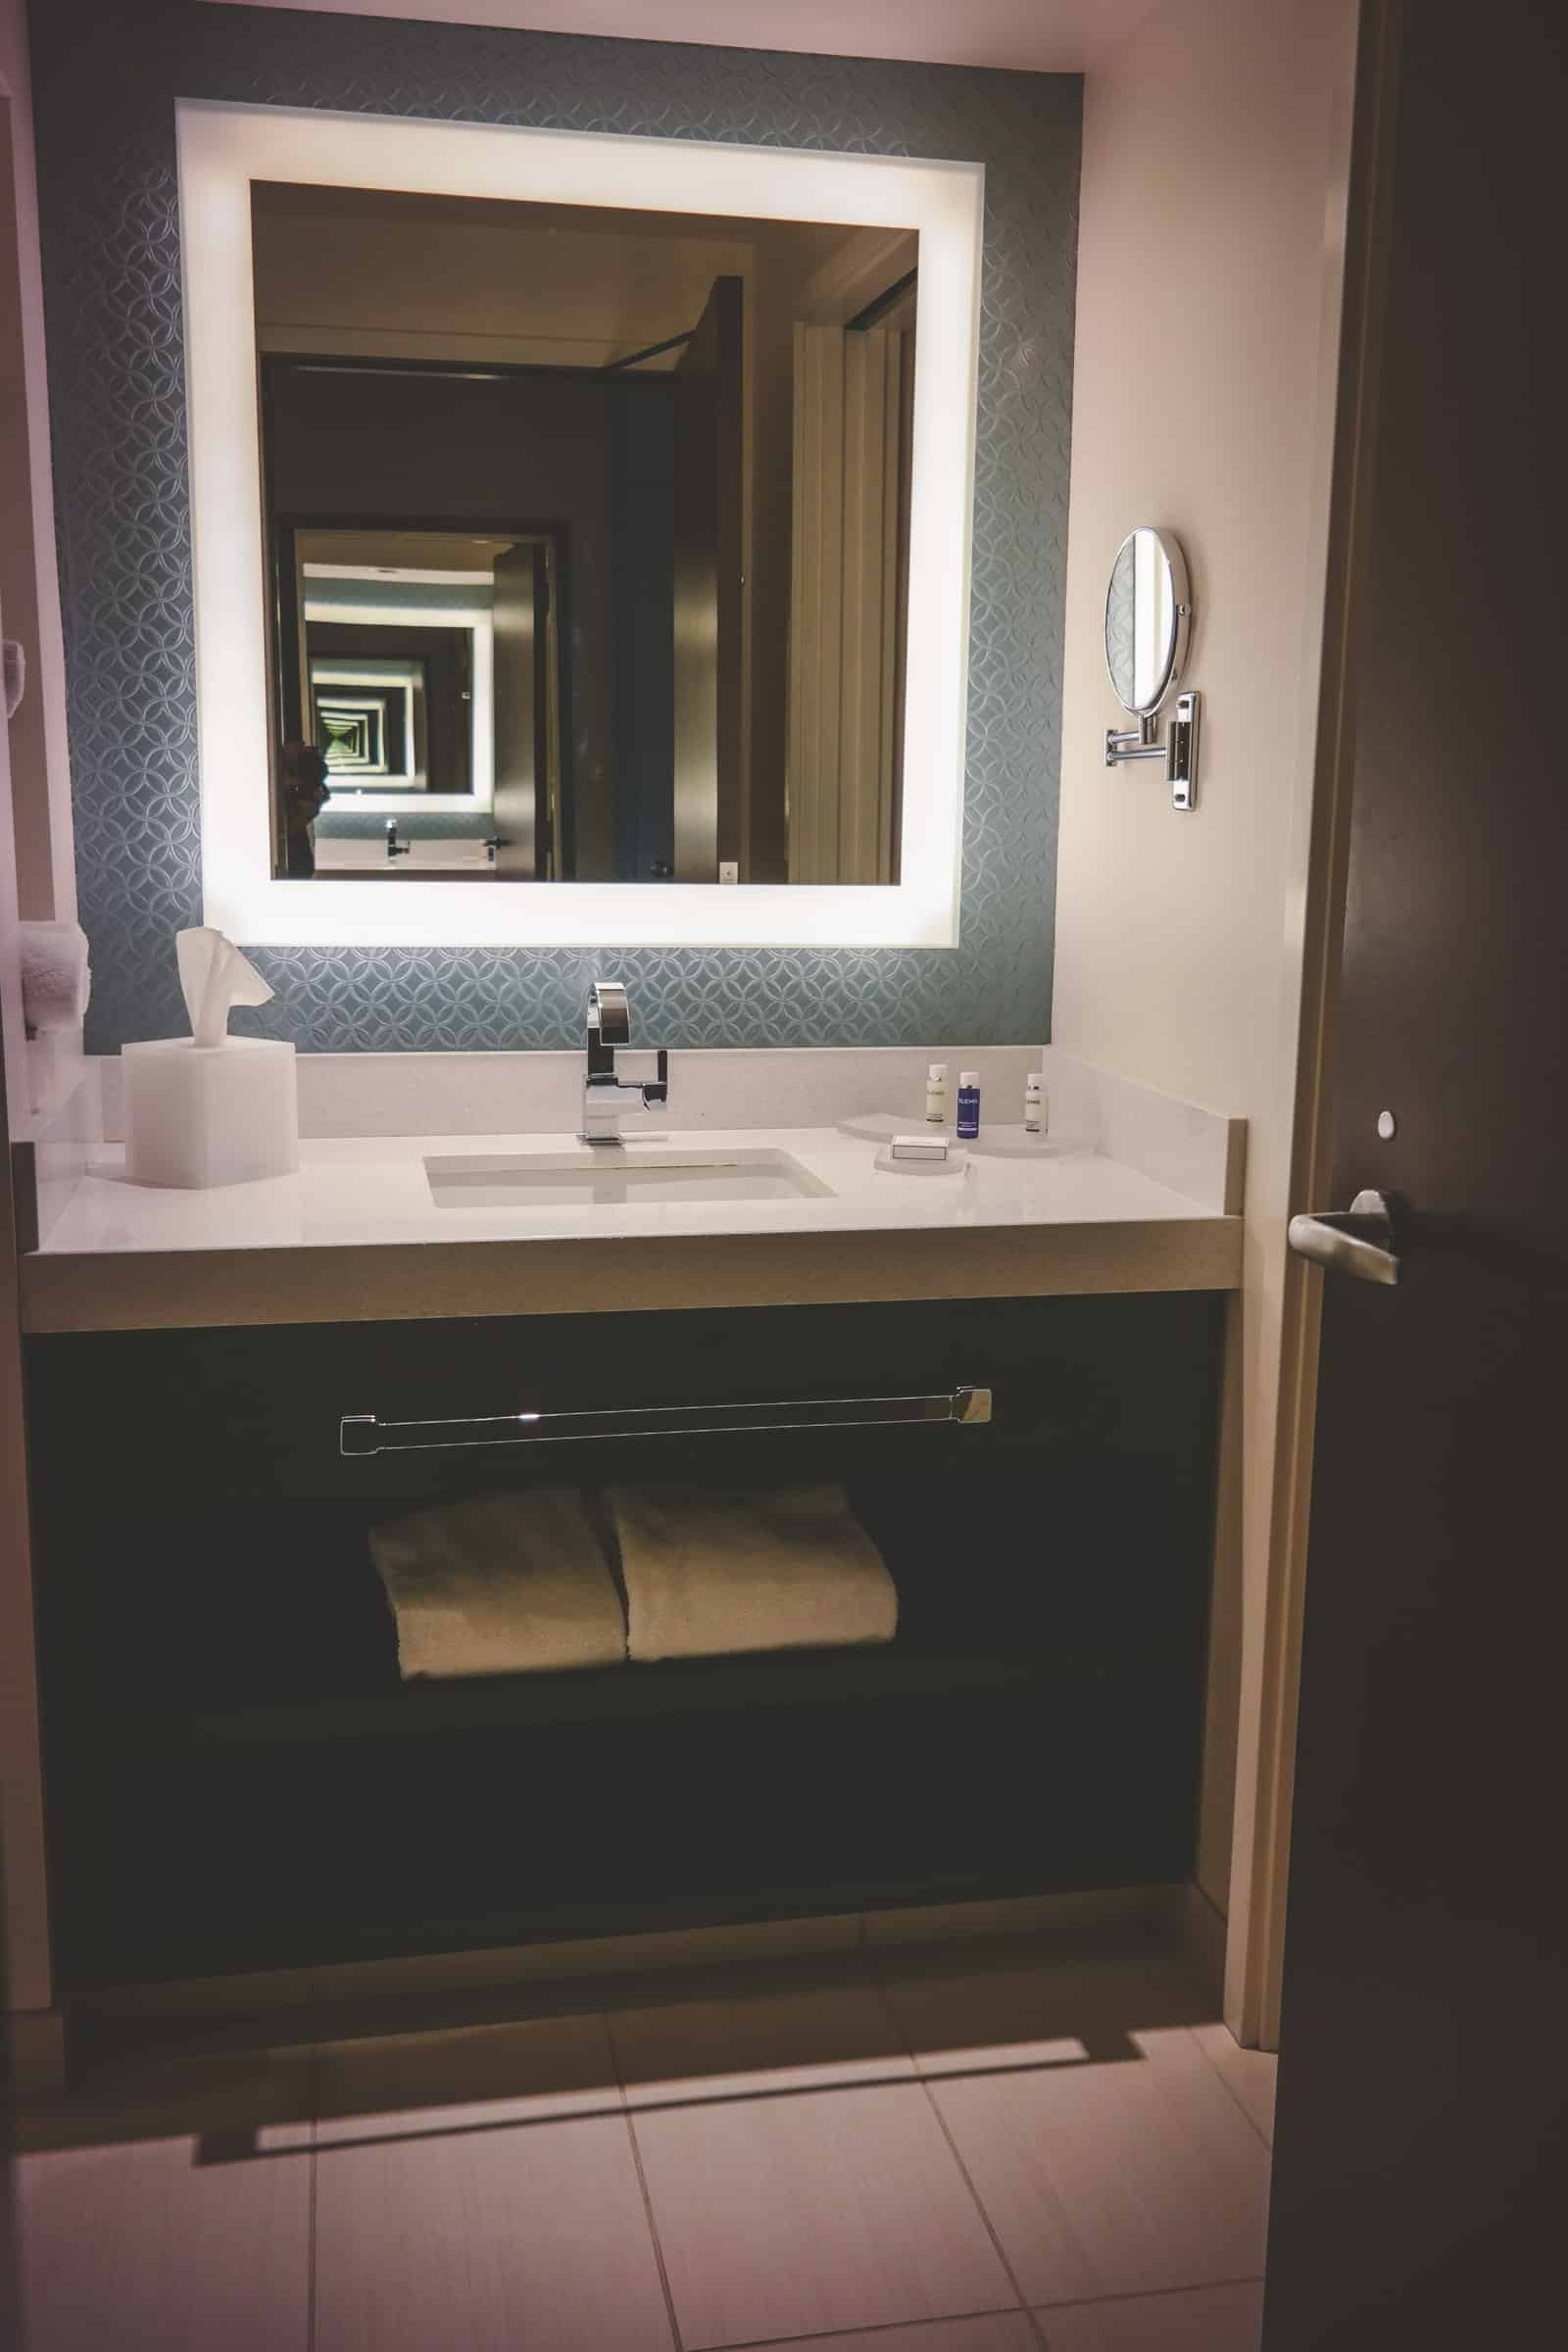 Potawatomi hotel rooms